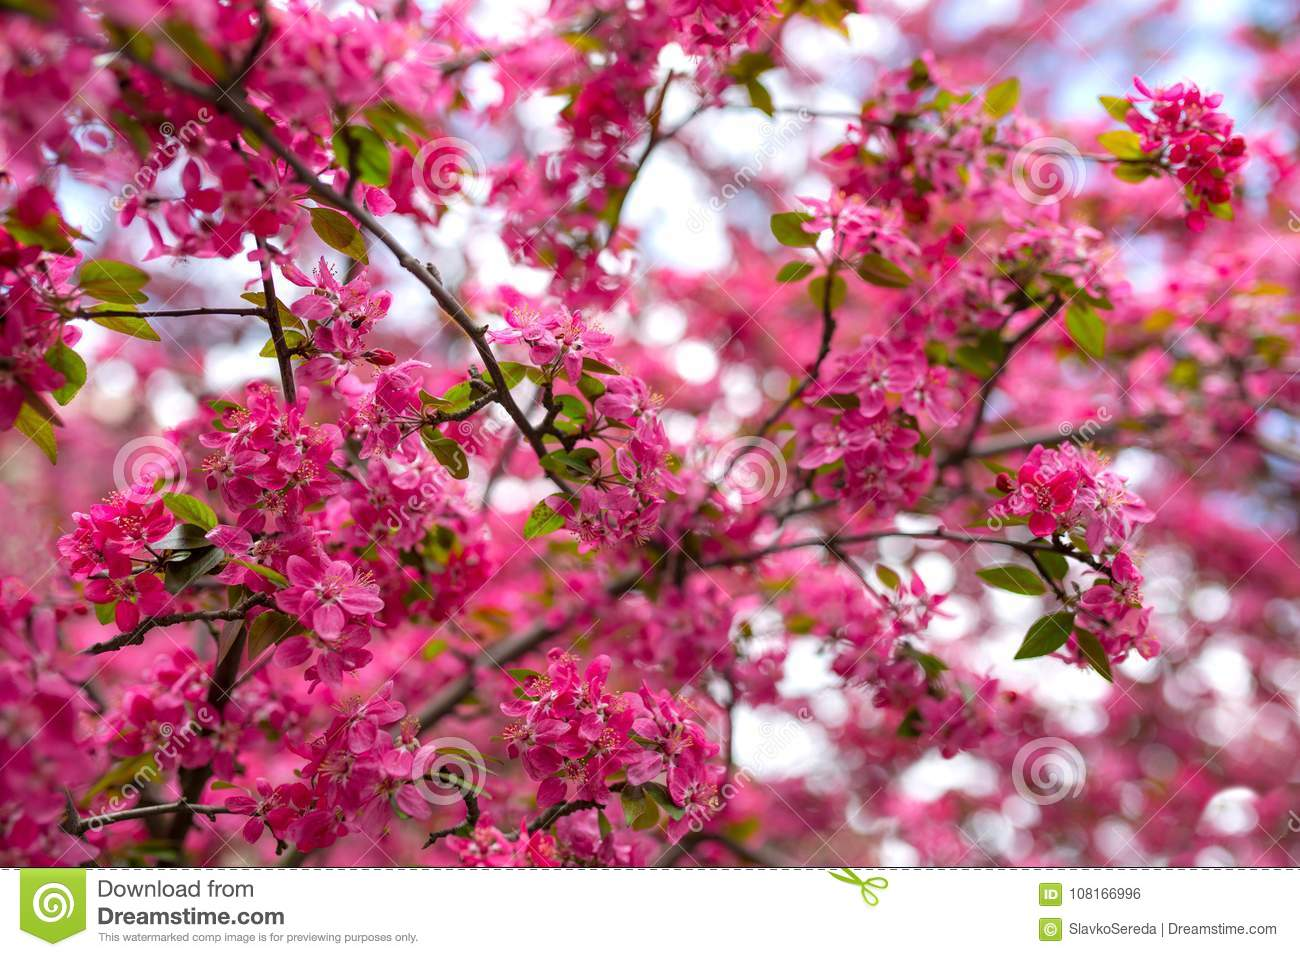 Gentle Lovely Pink Fragrant Spring Flowers Of A Paradise Apple Tree